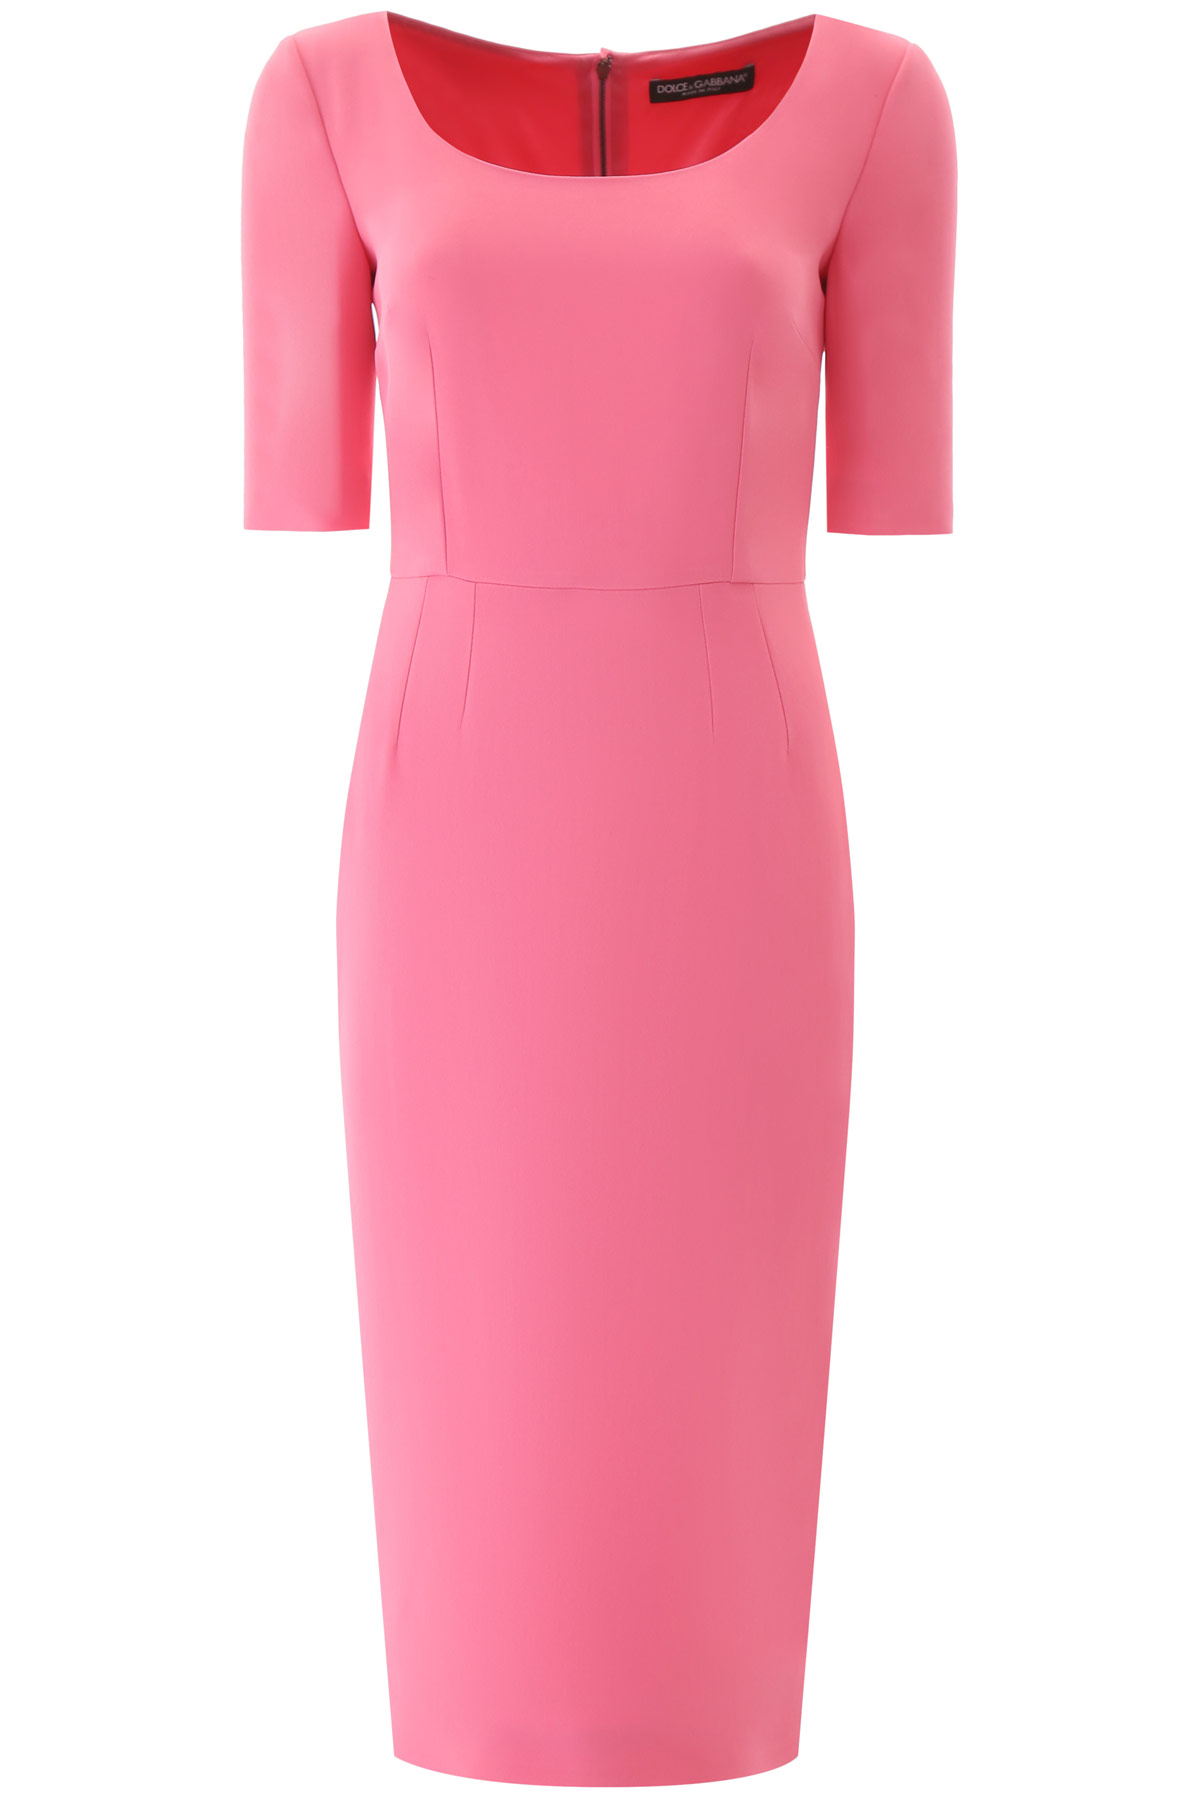 Dolce & Gabbana CrÊpe Sheath Midi Dress In Pink